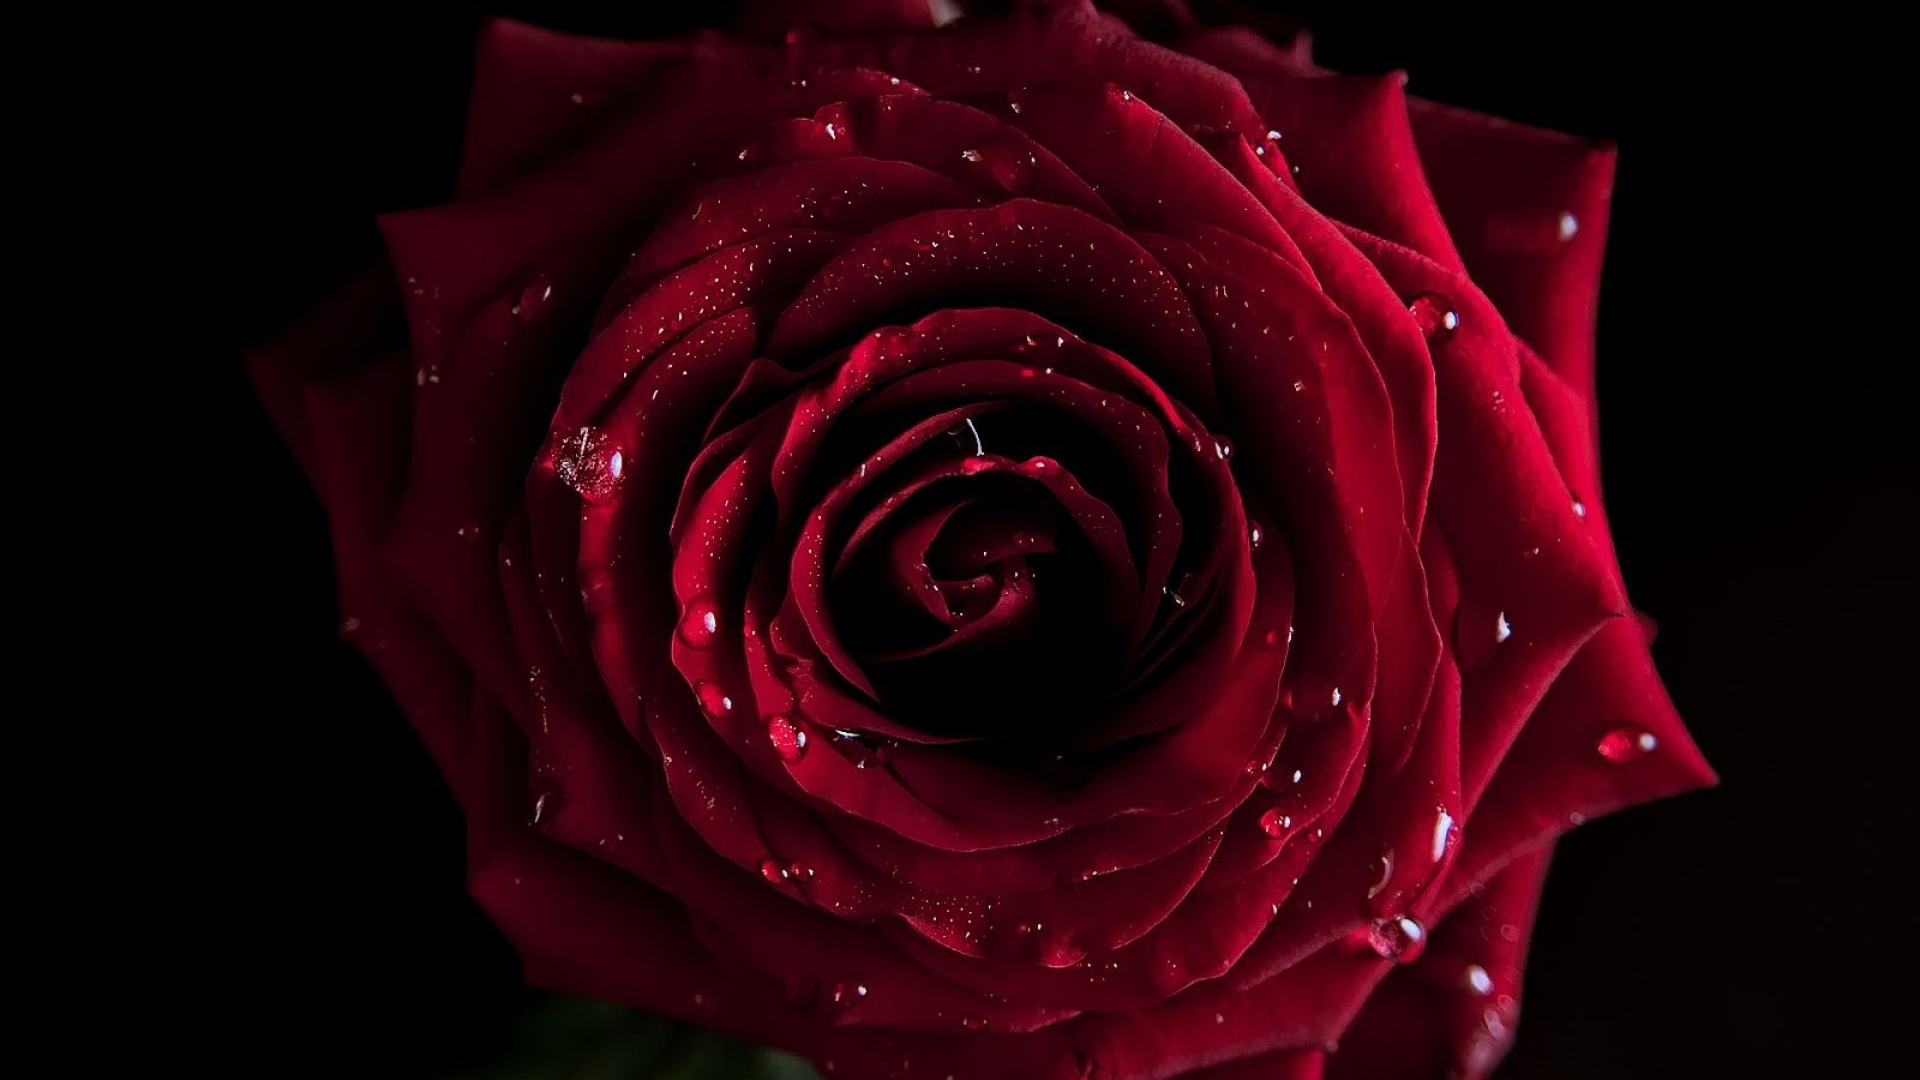 Red rose wallpapers pictures images - Black and red rose wallpaper ...